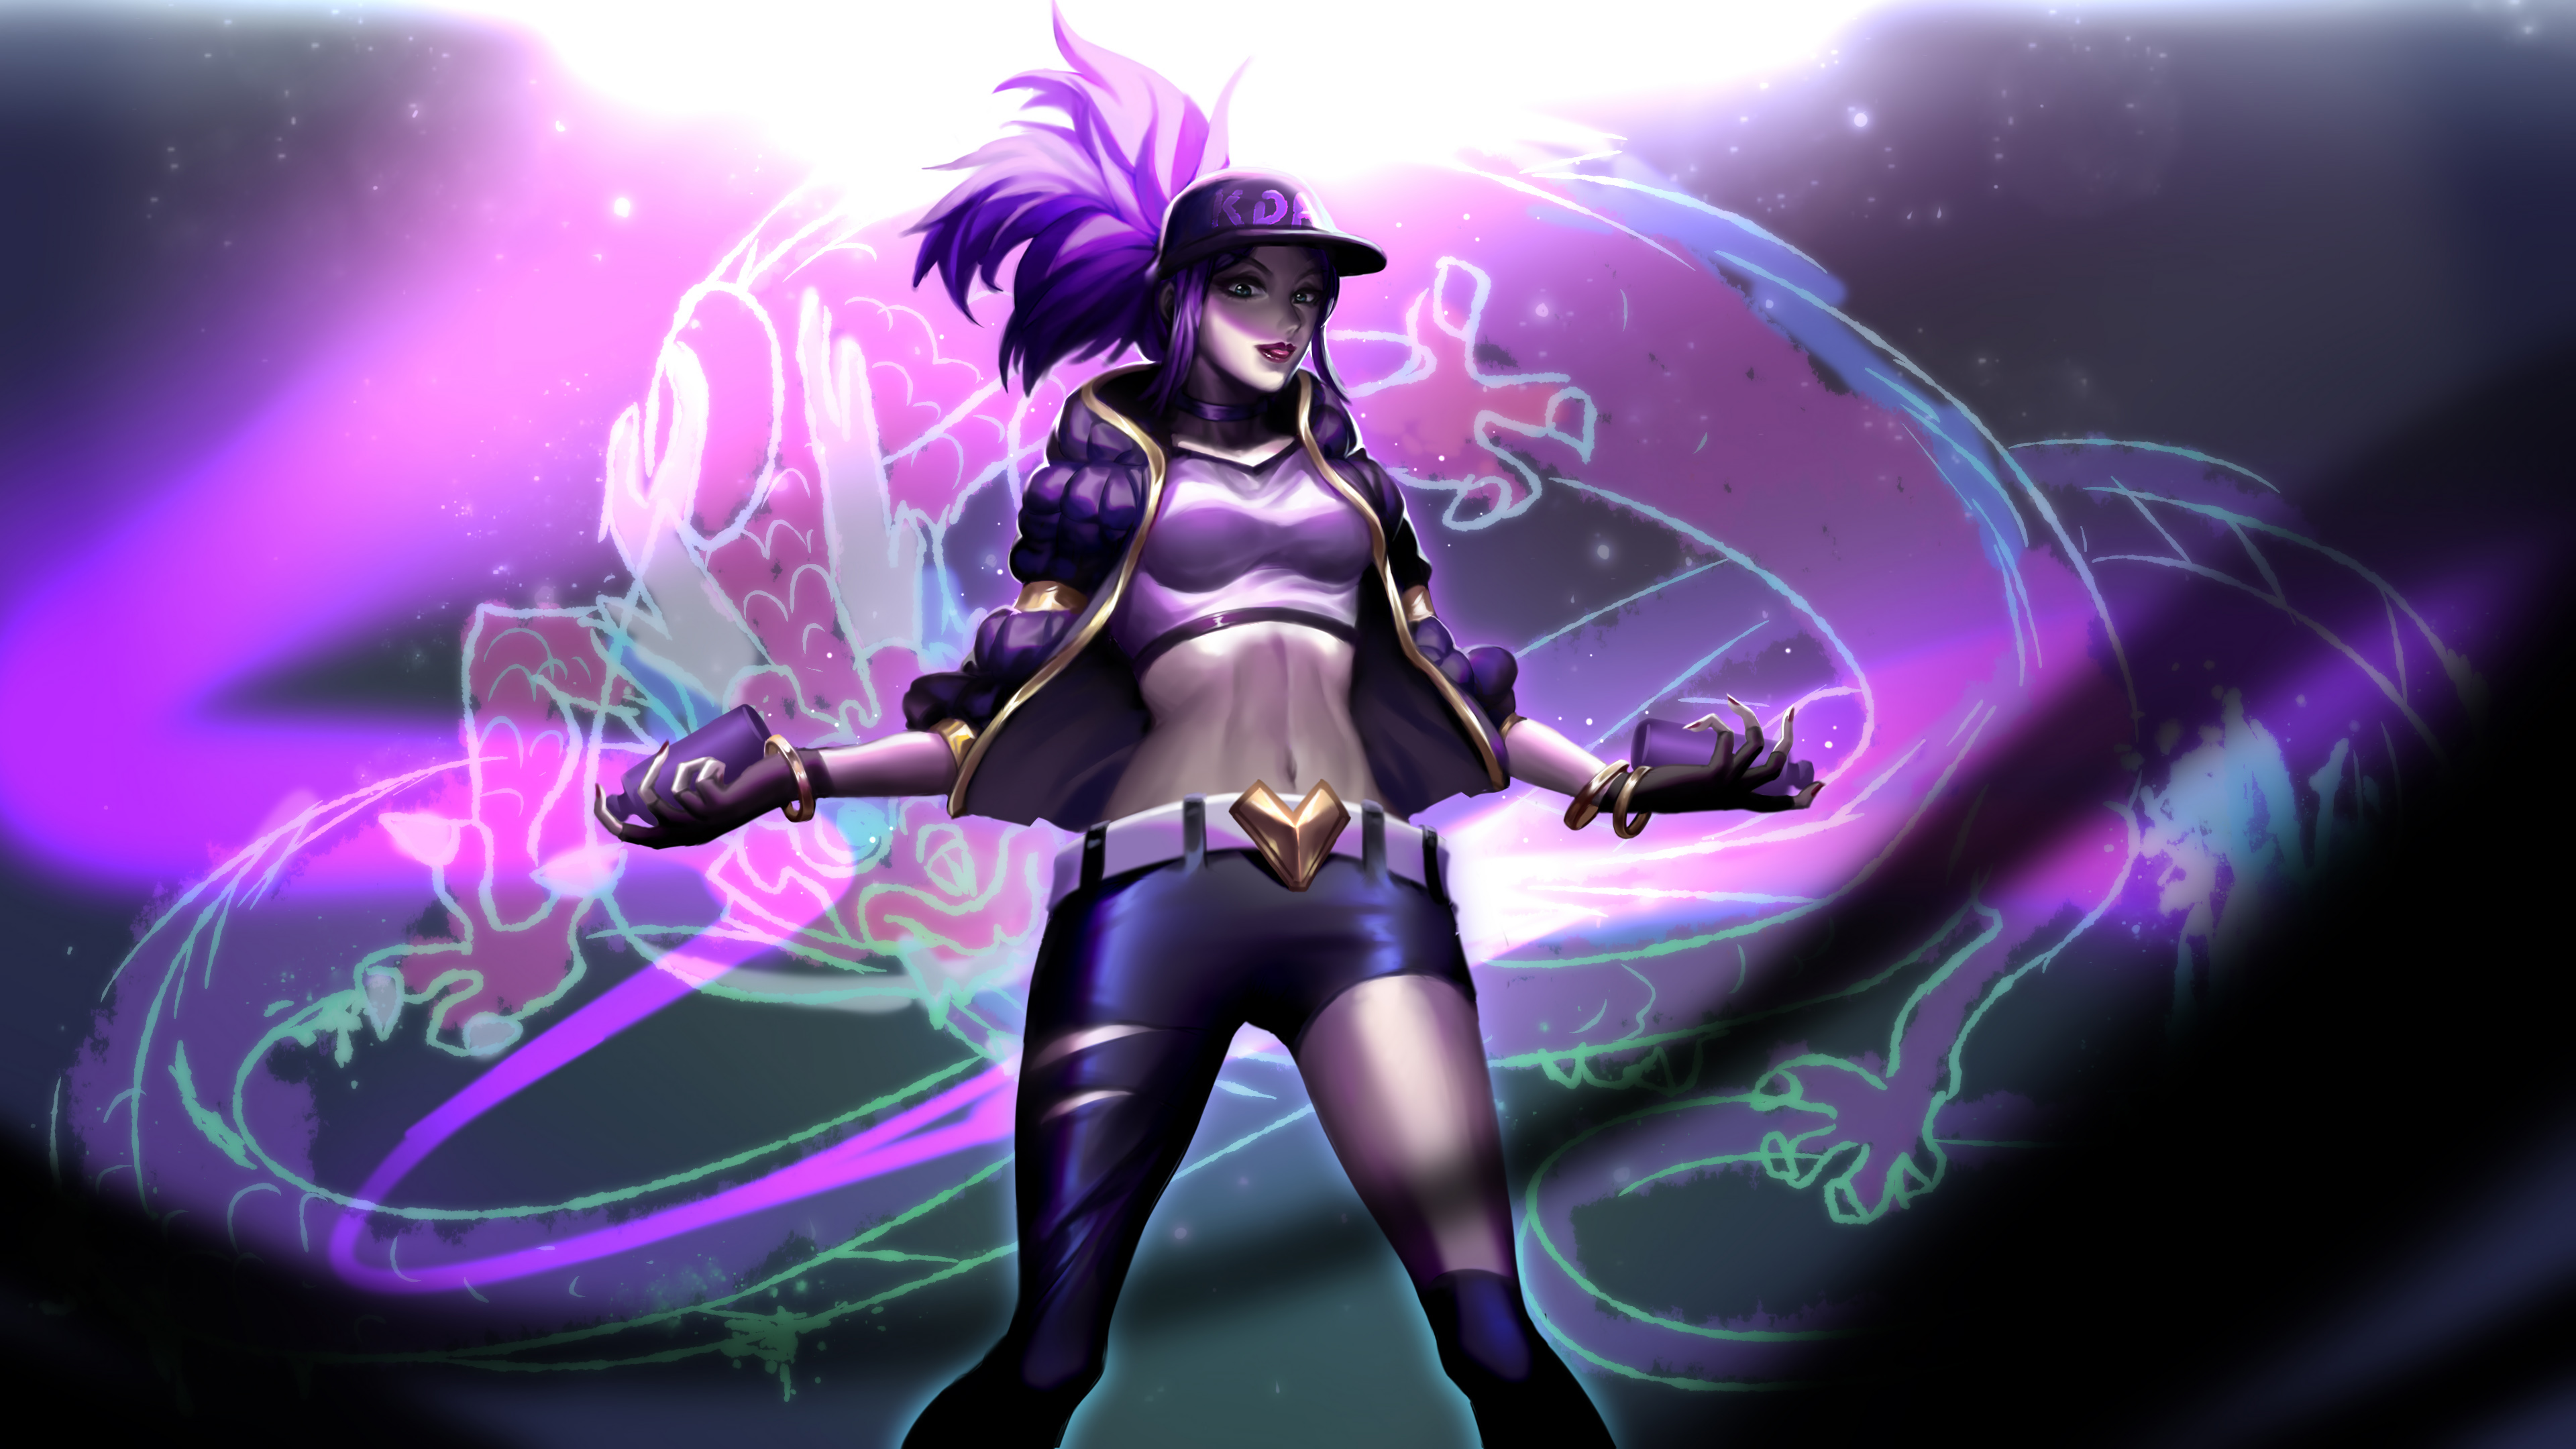 Wallpaper 4k Kda Akali 4k 4k Wallpapers Akali League Of Legends